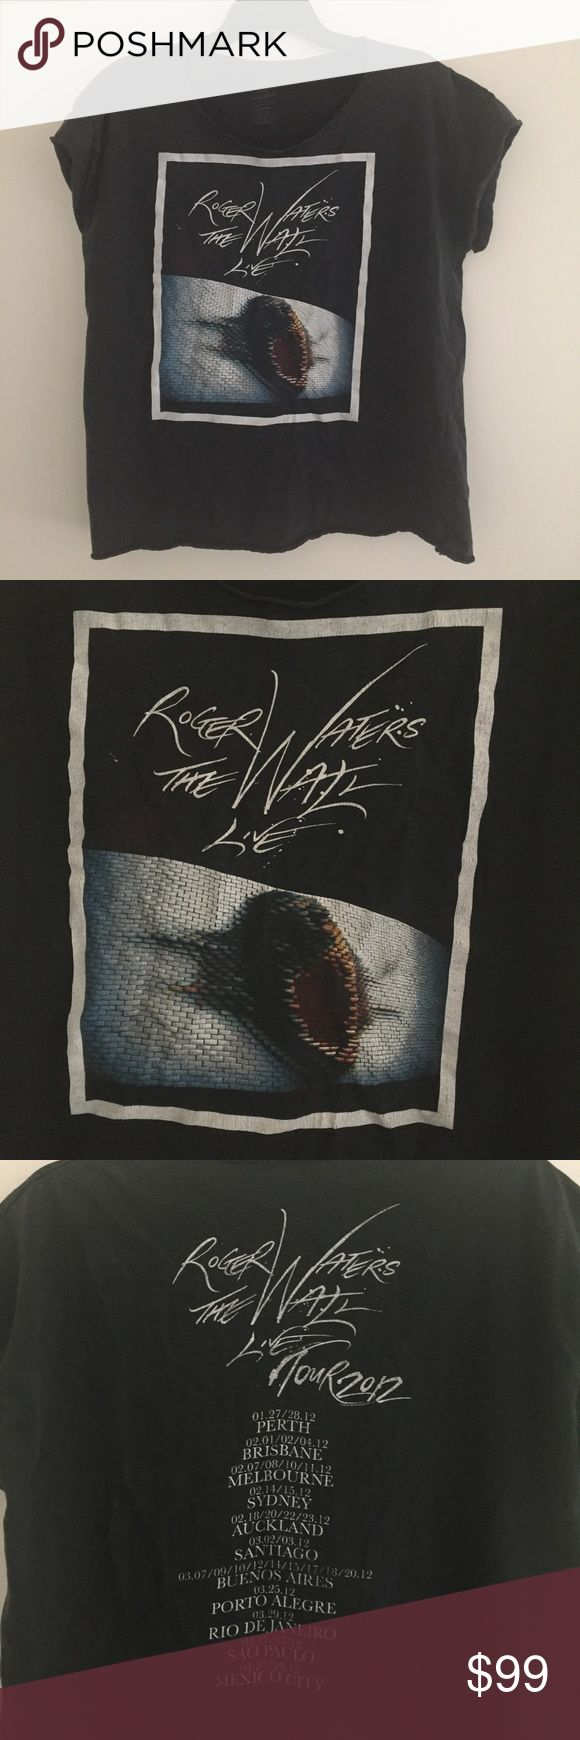 Vintage Roger Waters The Wall Pink Floyd tshirt 2012 official tour shirt. Originally a men's size Large shirt cut into a feminine women's XL. Heavyweight cotton tee with distressed broken-in details. Faded black color and very cool. Tops Tees - Short Sleeve